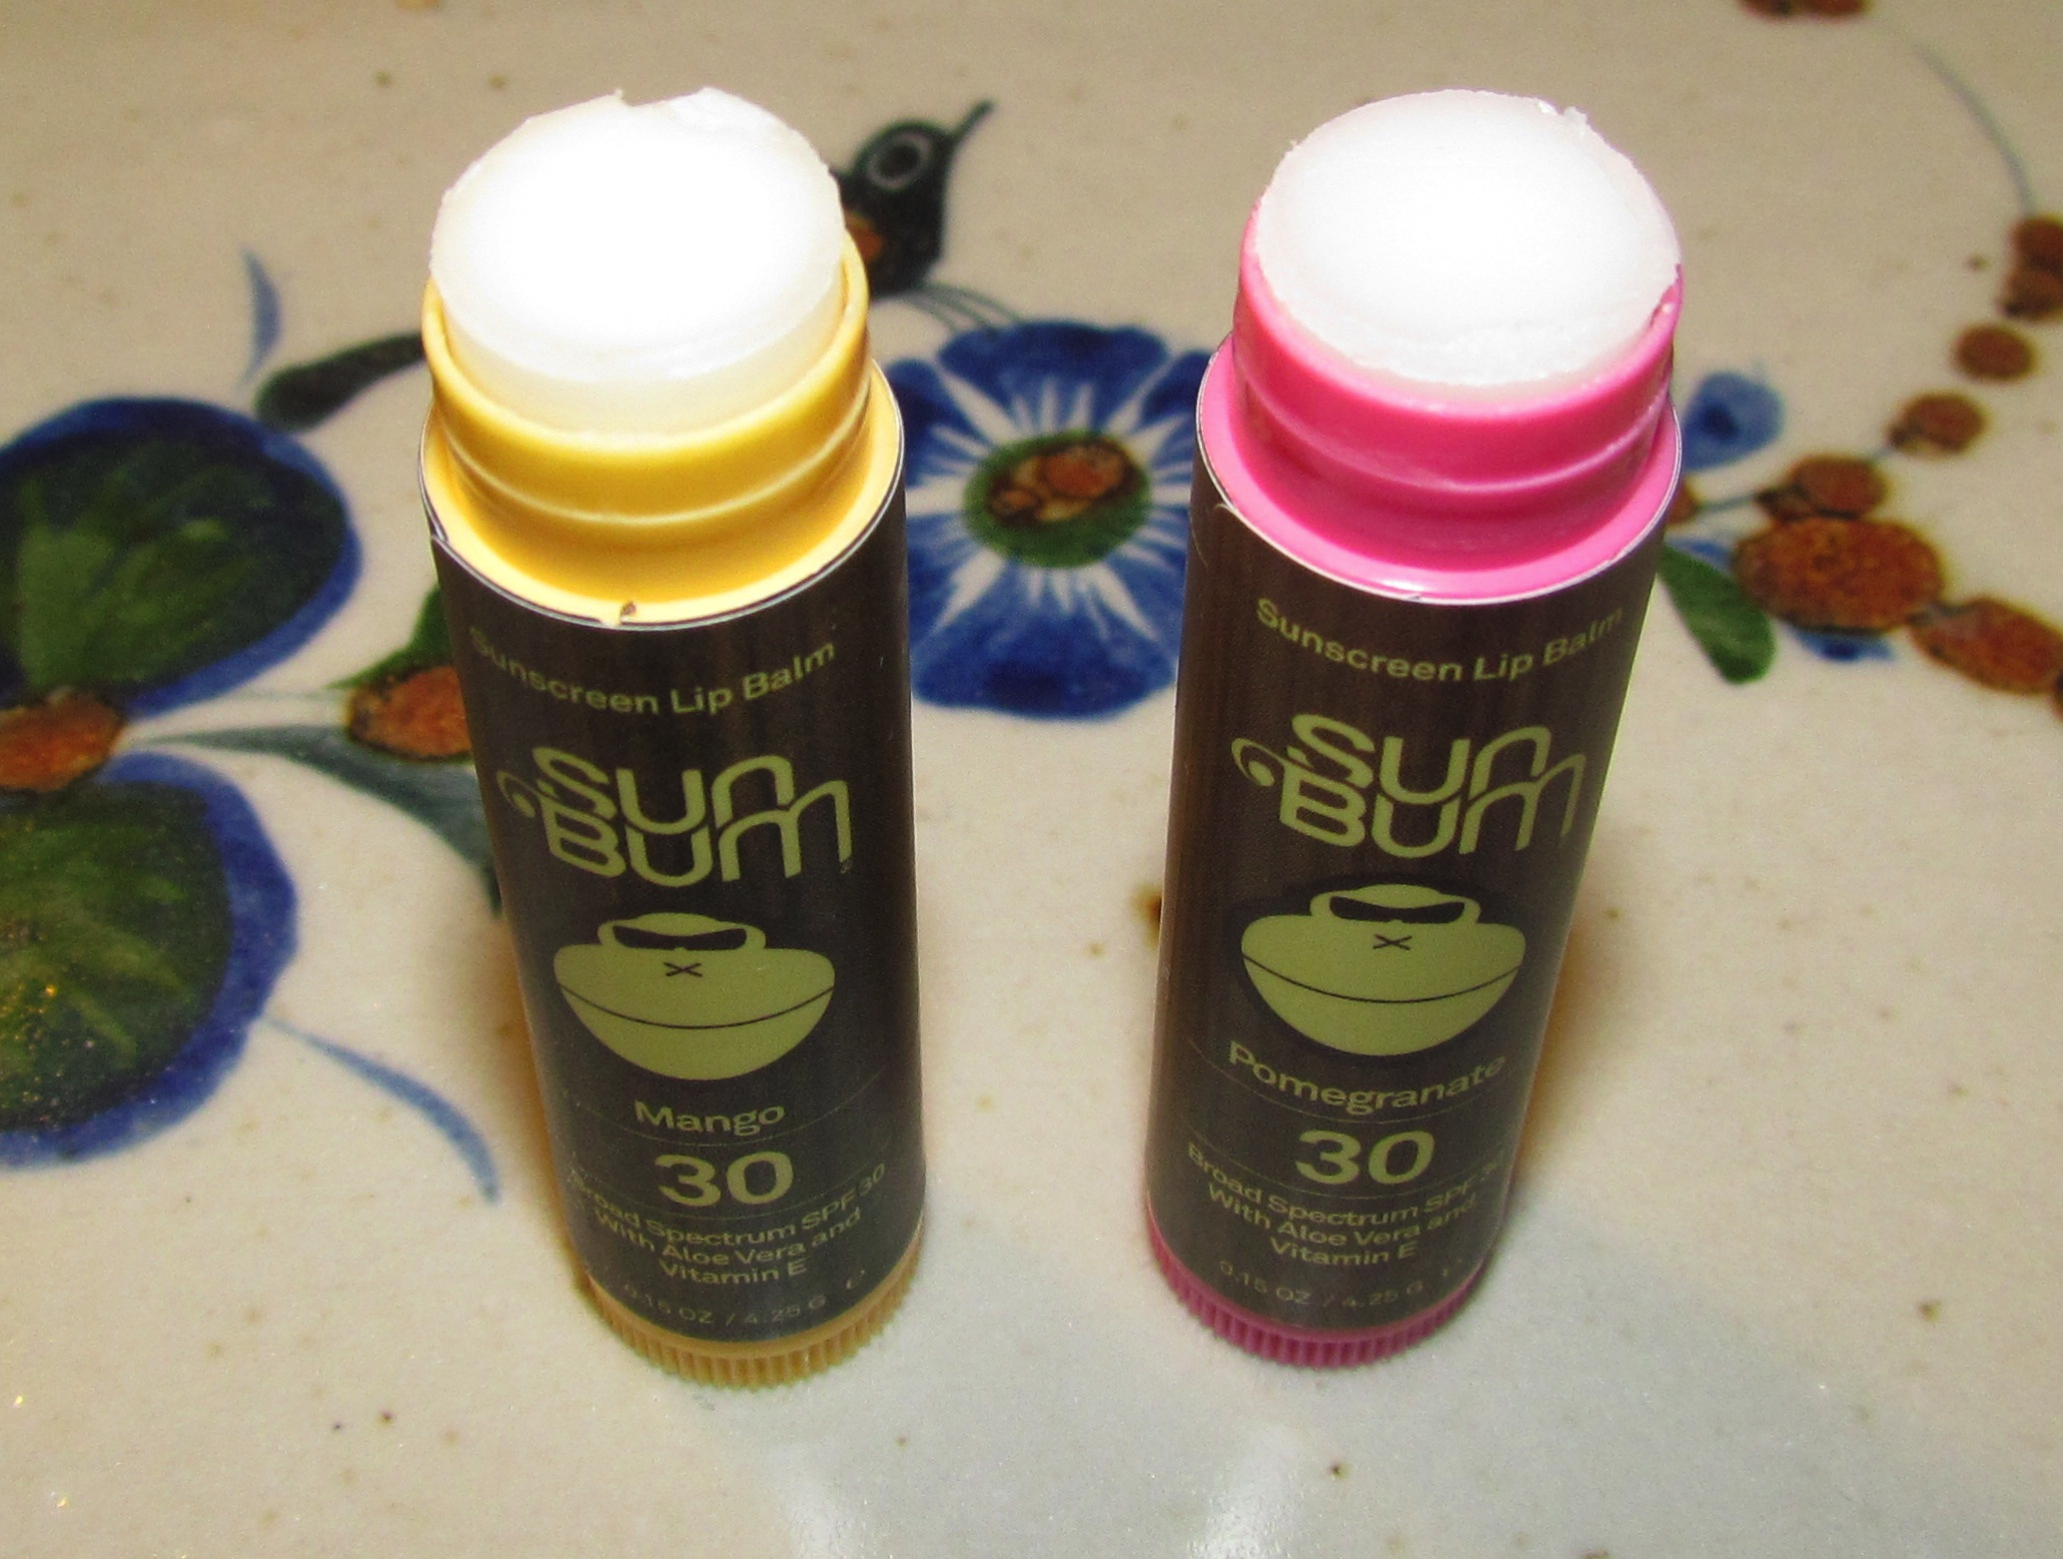 Sunscreen Lip Balm  by Sun Bum #11